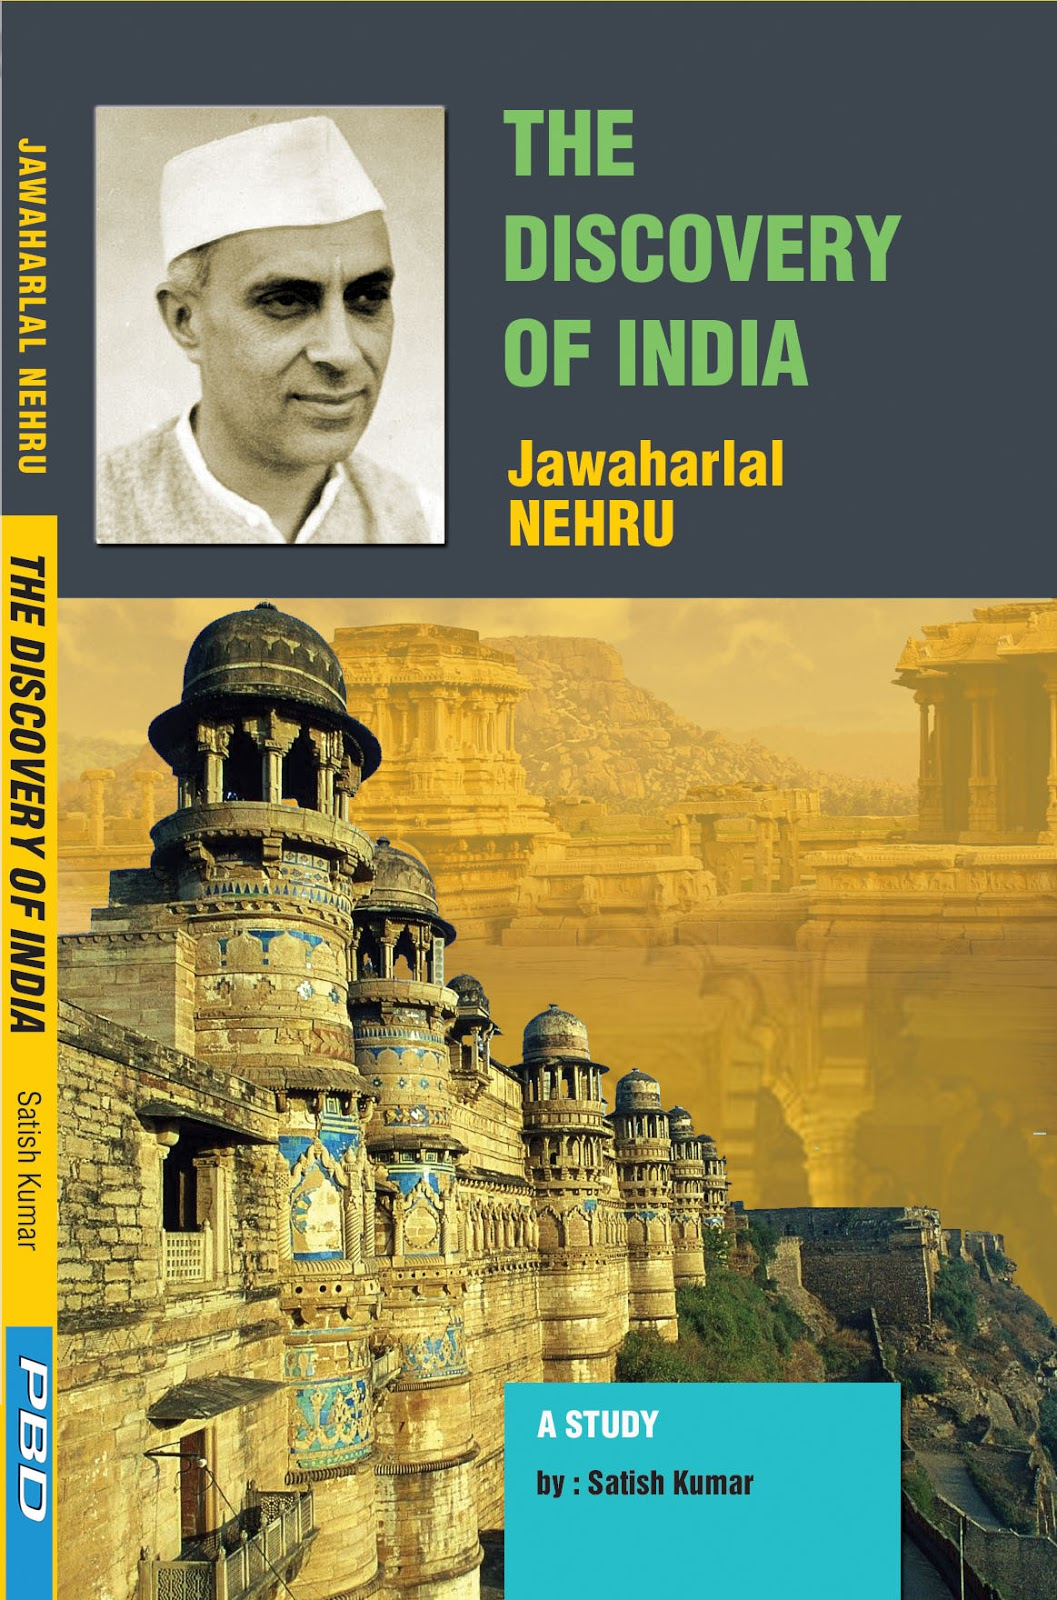 the book of nature jawaharlal nehru